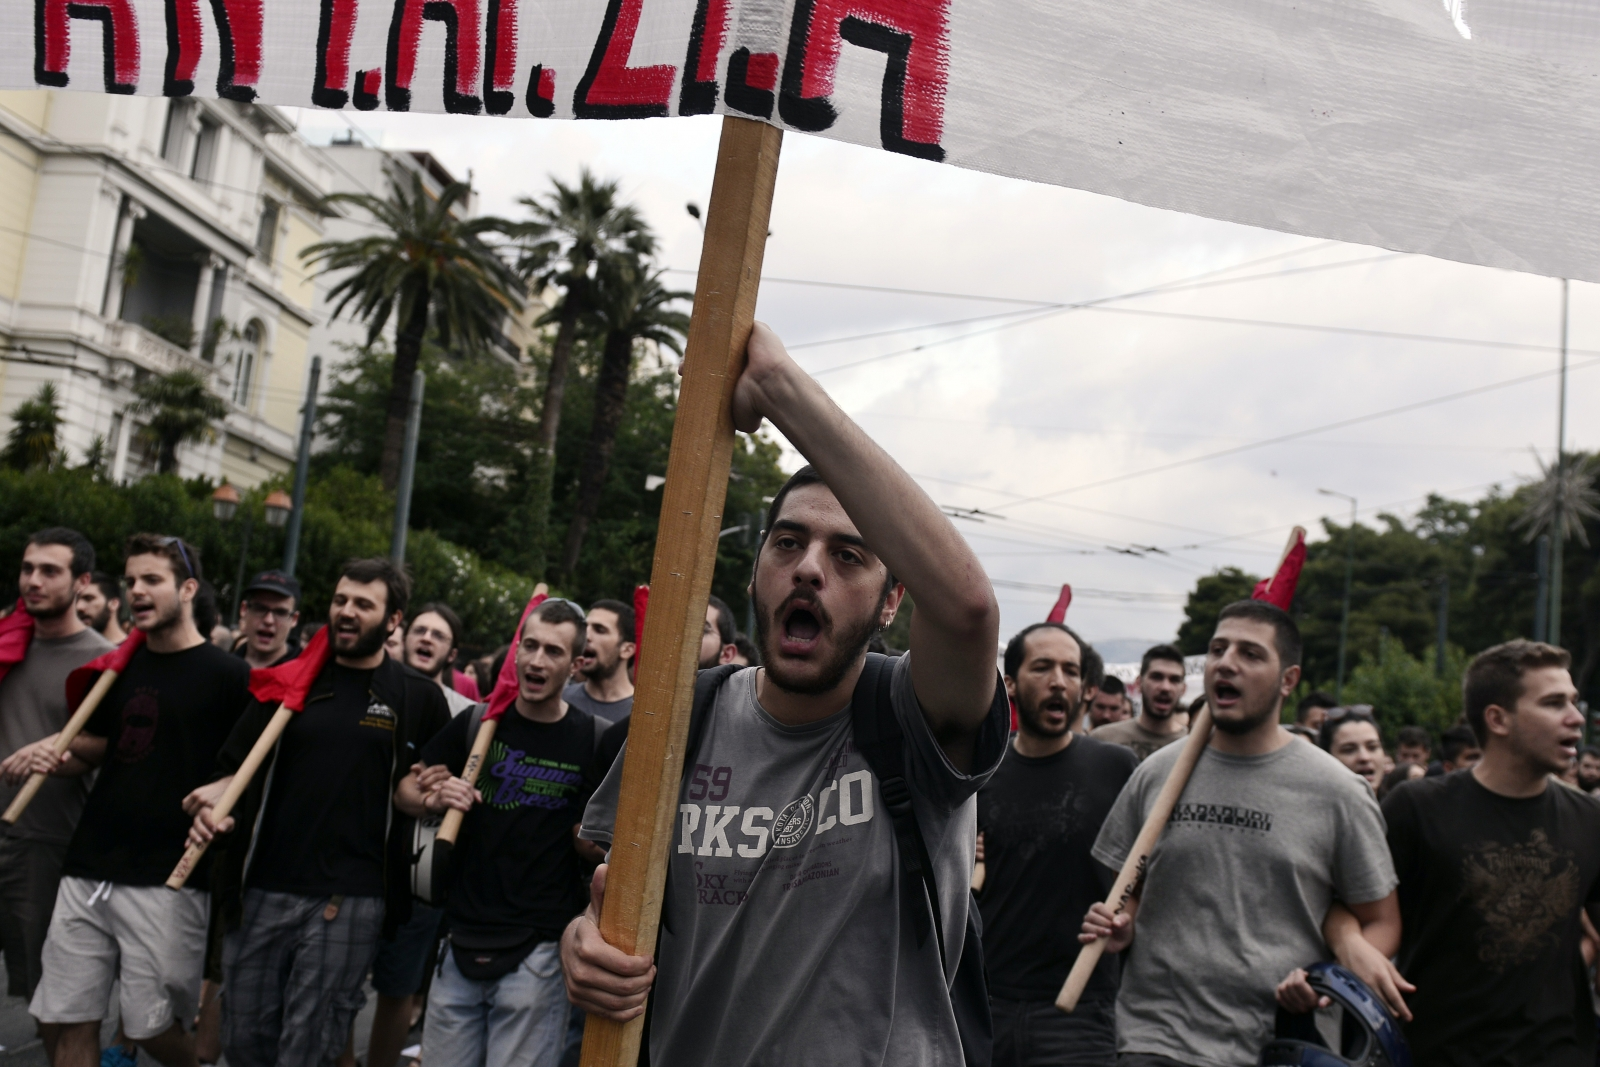 Greece crisis protest